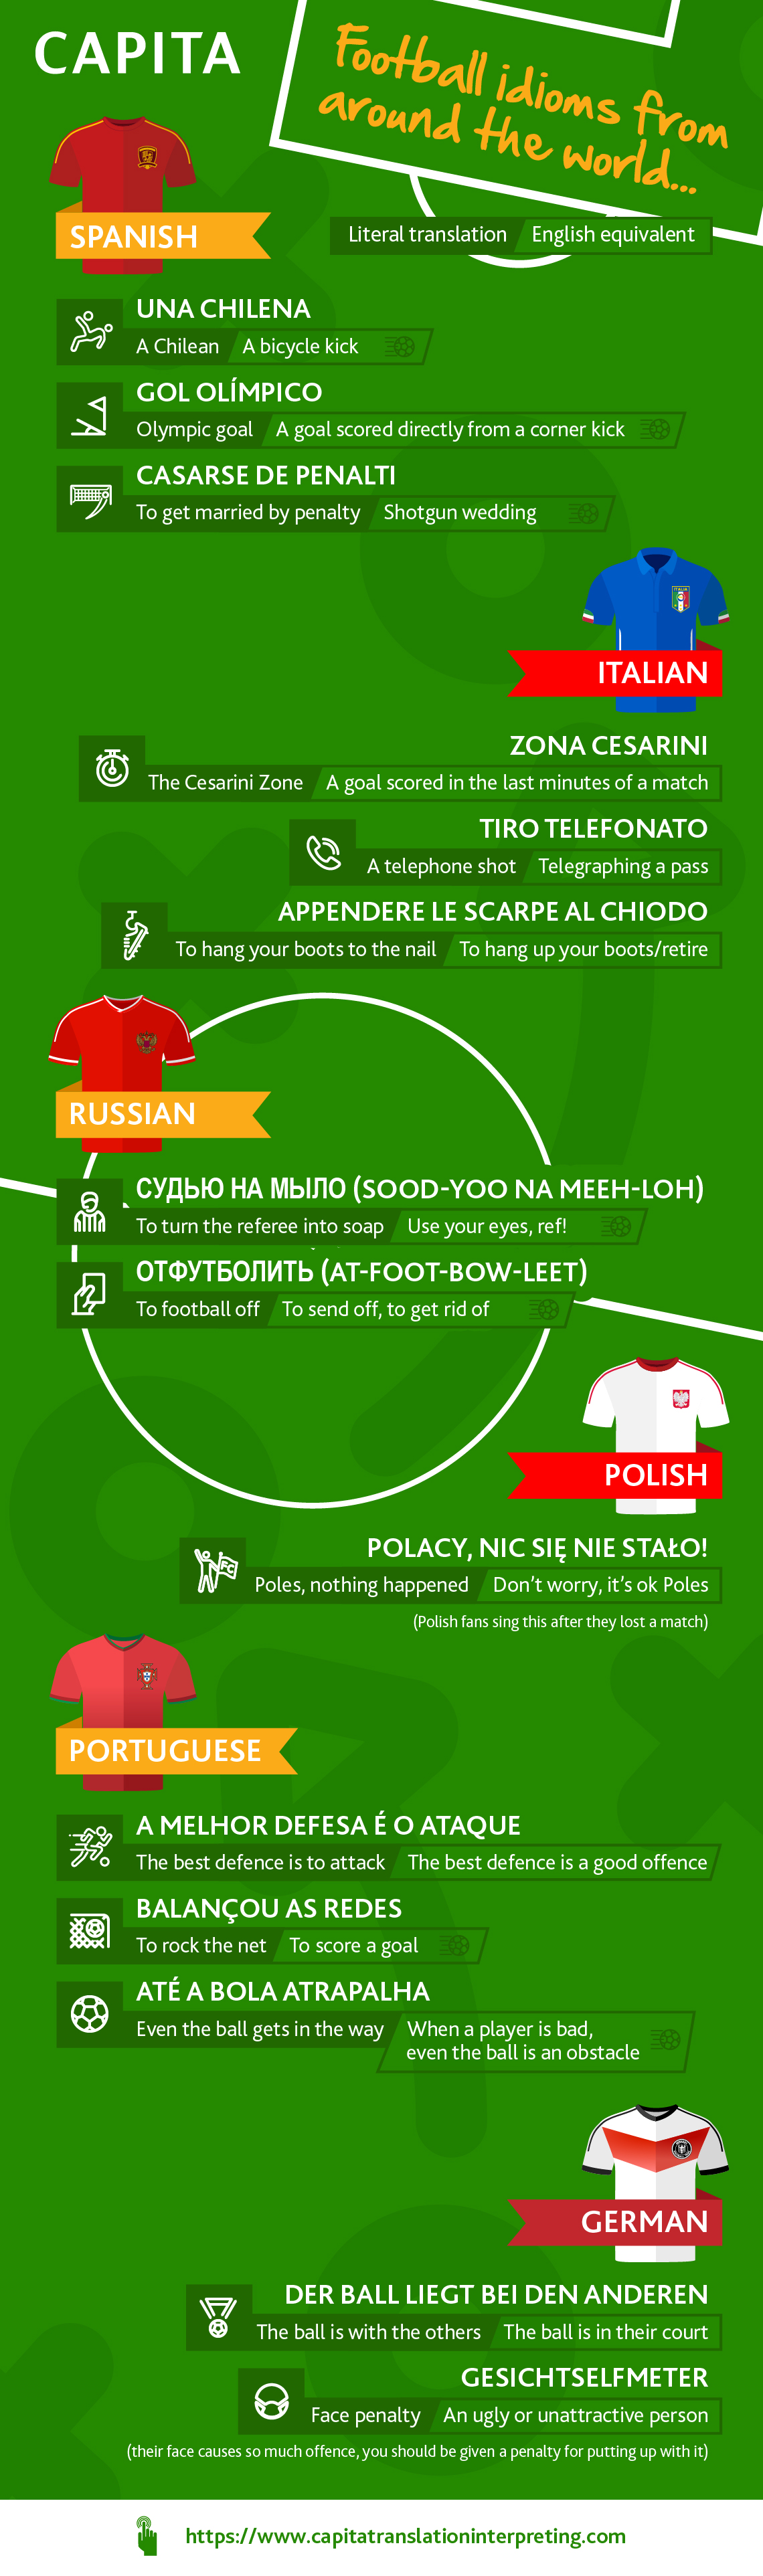 Football idioms from around the world